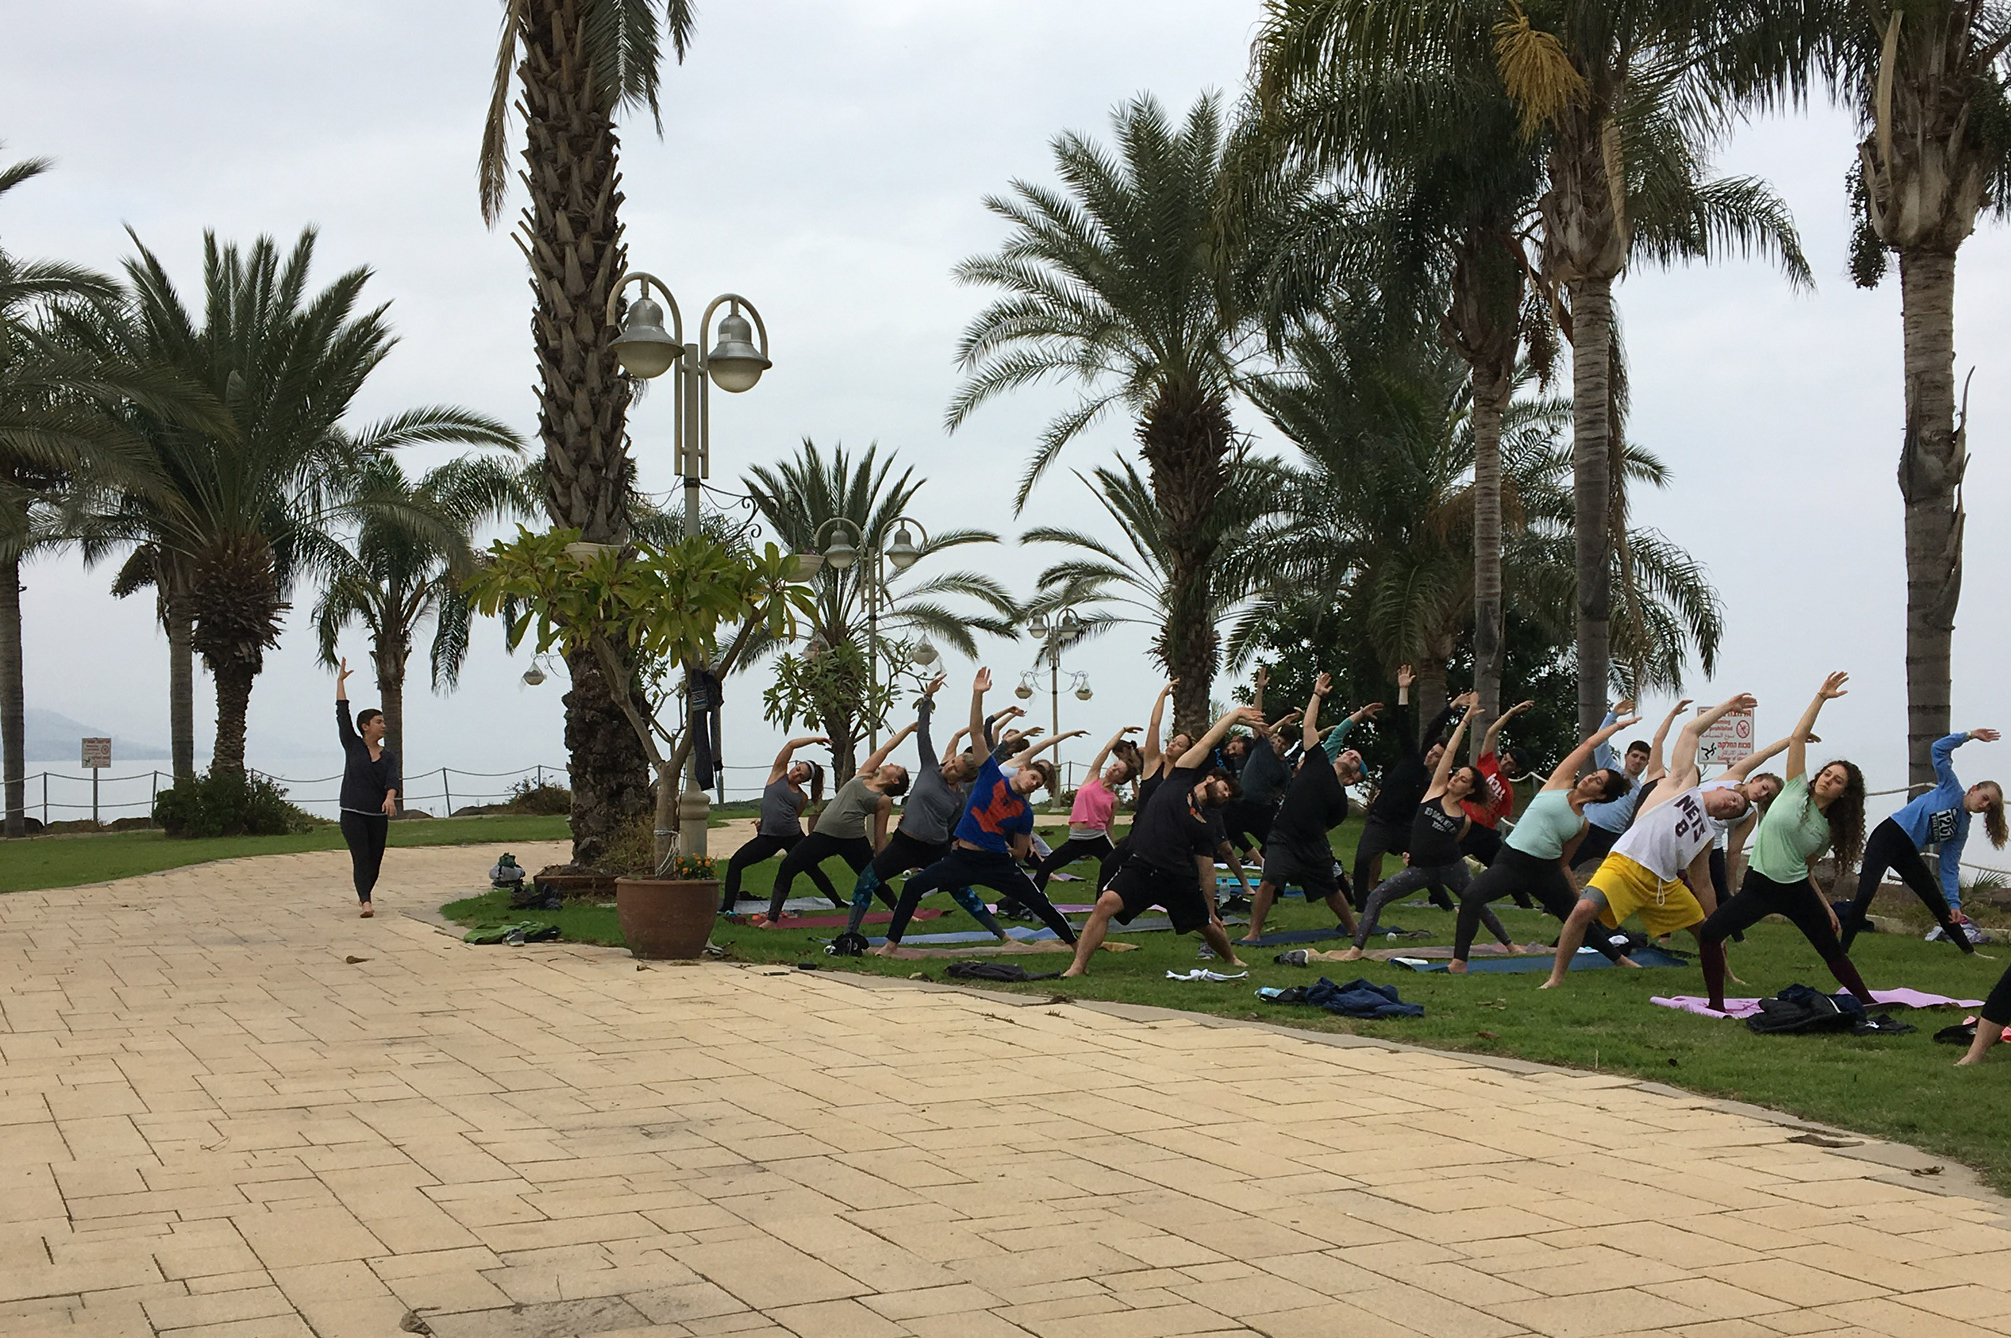 Young Jews doing yoga on a beach under palm trees